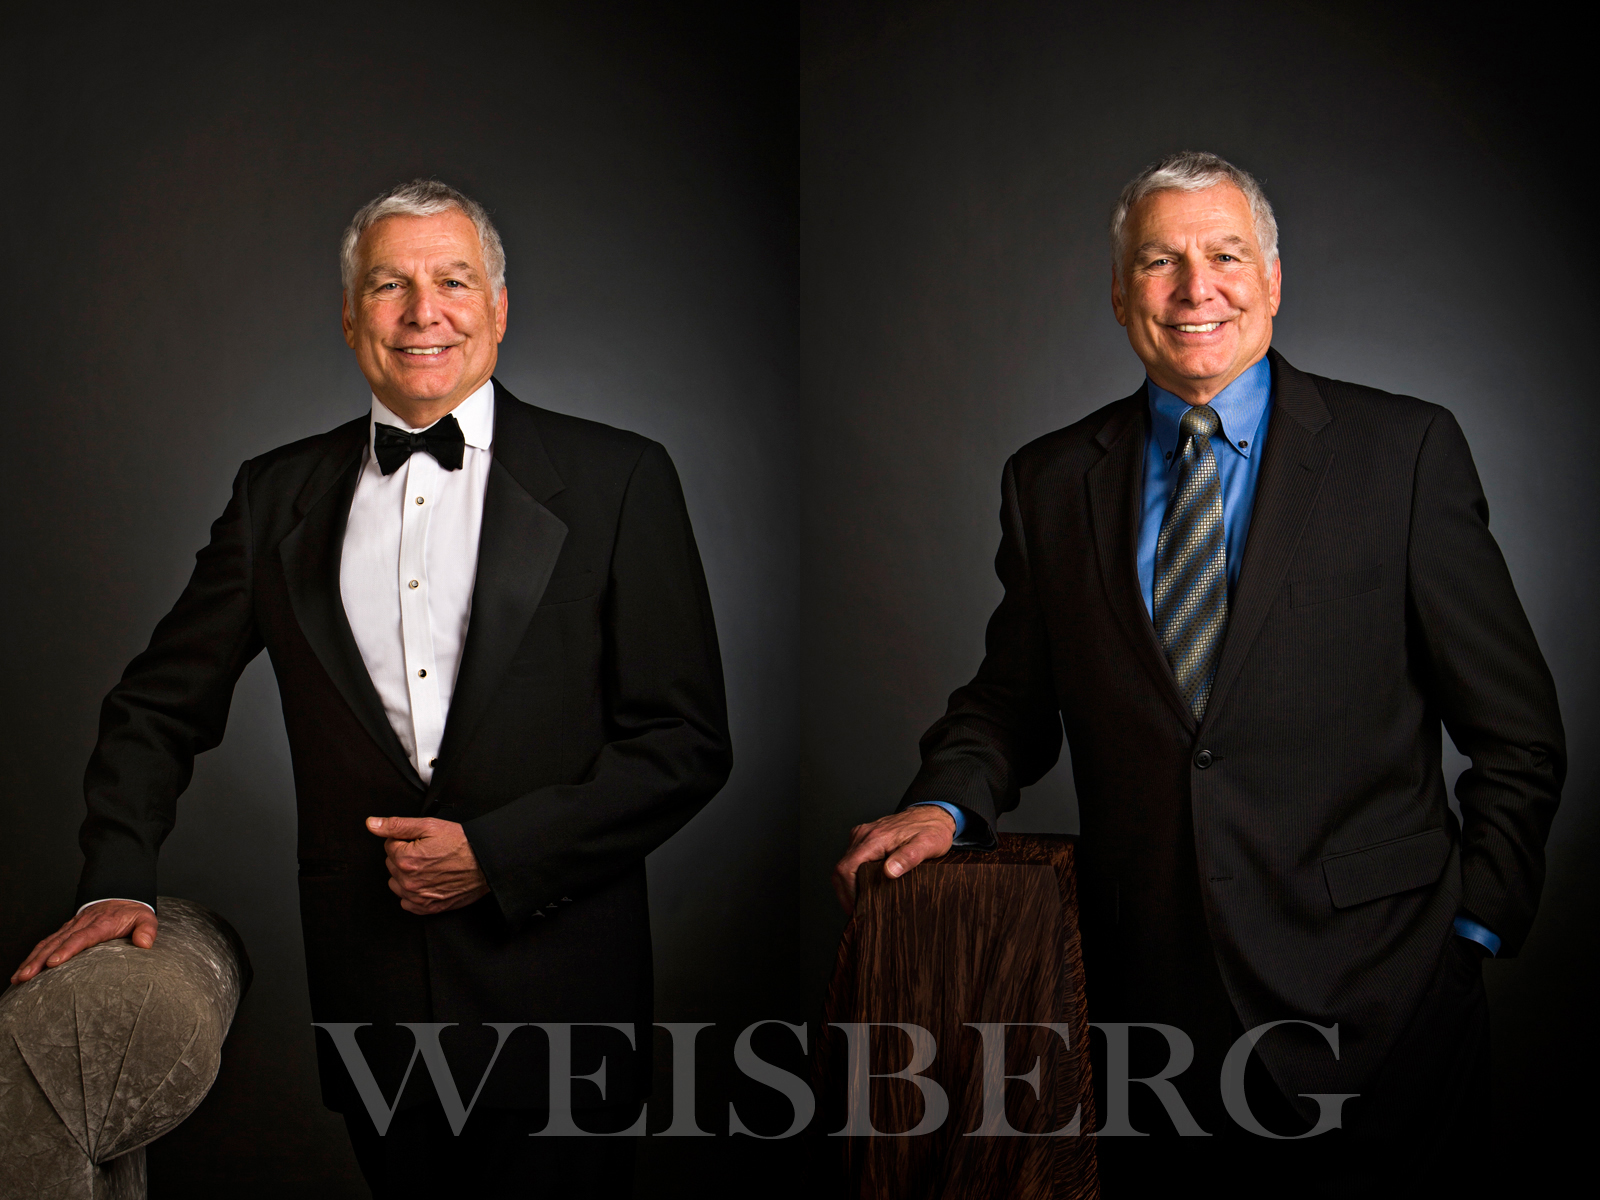 corporate headshots, executive portraits, images for executive portra[